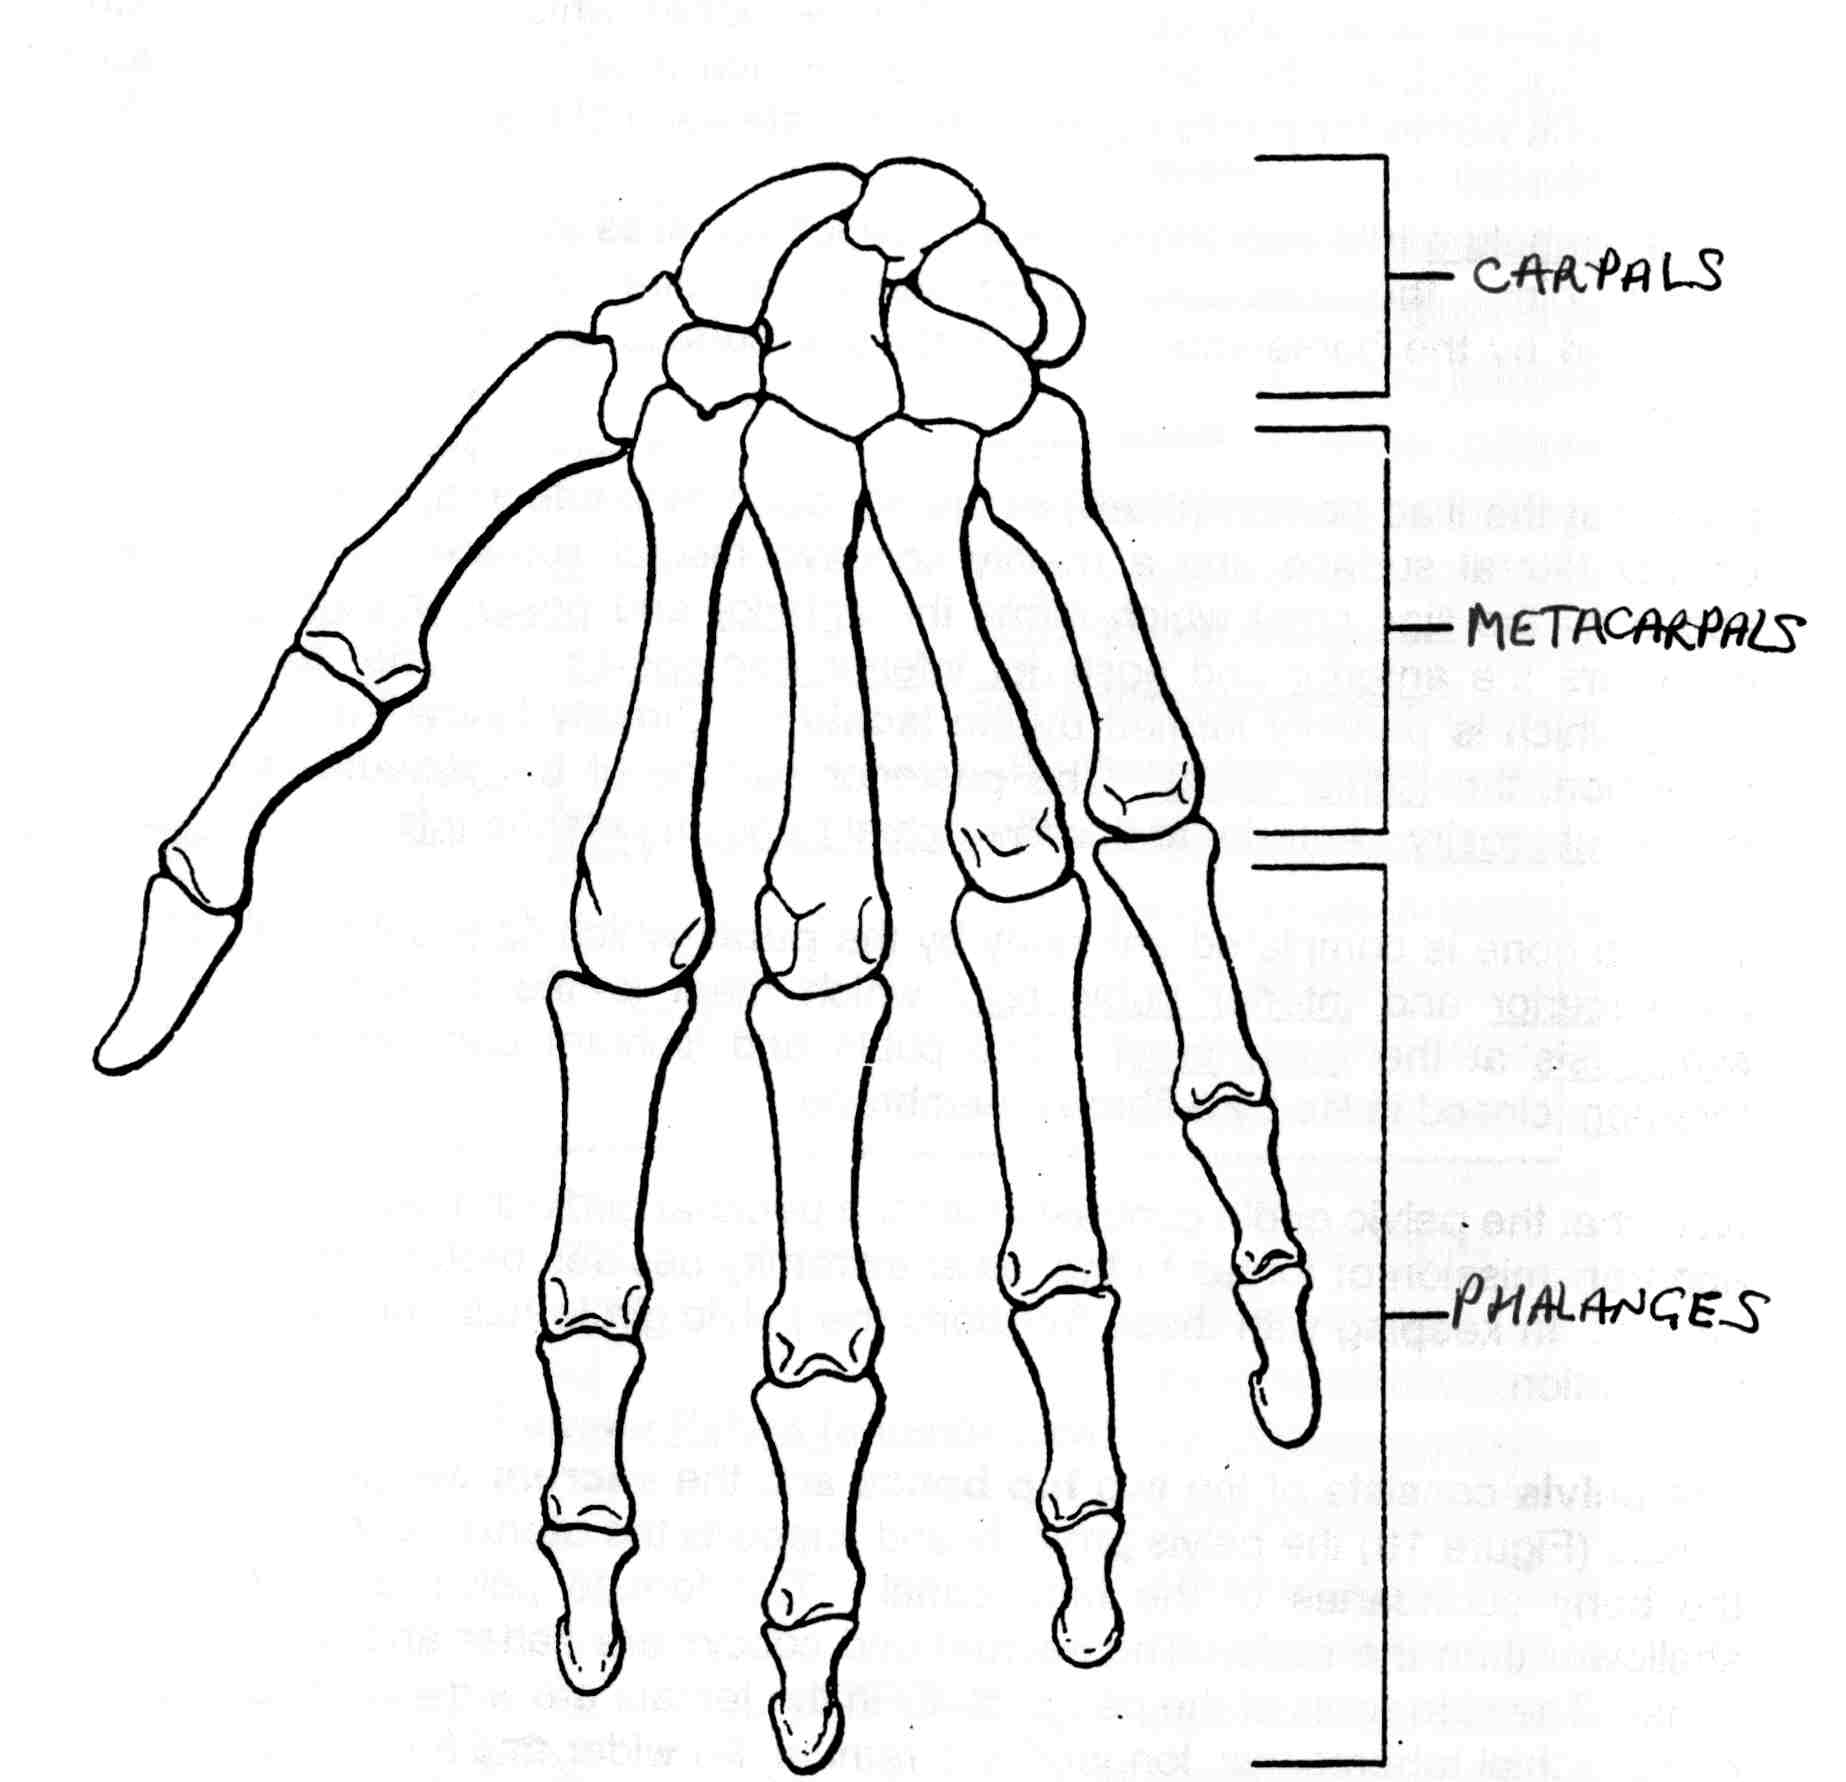 Hand Bone Drawing At Getdrawings Free For Personal Use Hand